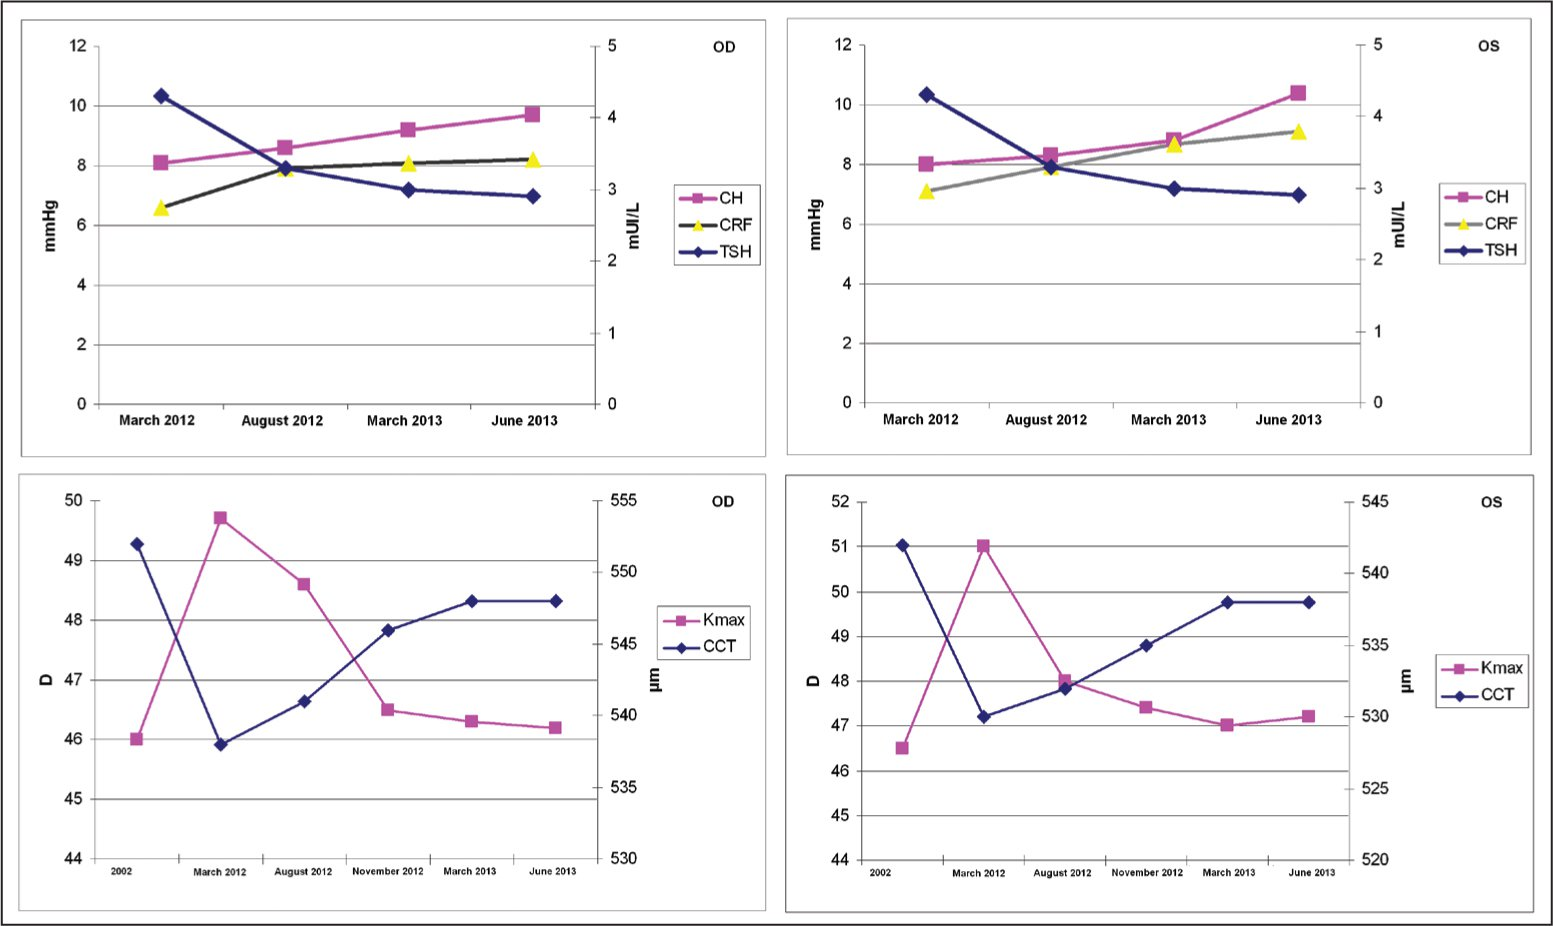 Chronological evolution of maximal keratometry (Kmax) readings, central corneal thickness (CCT), corneal hysteresis (CH), corneal resistance factor (CRF), and thyroid-stimulating hormone (TSH) concentration in the patient.